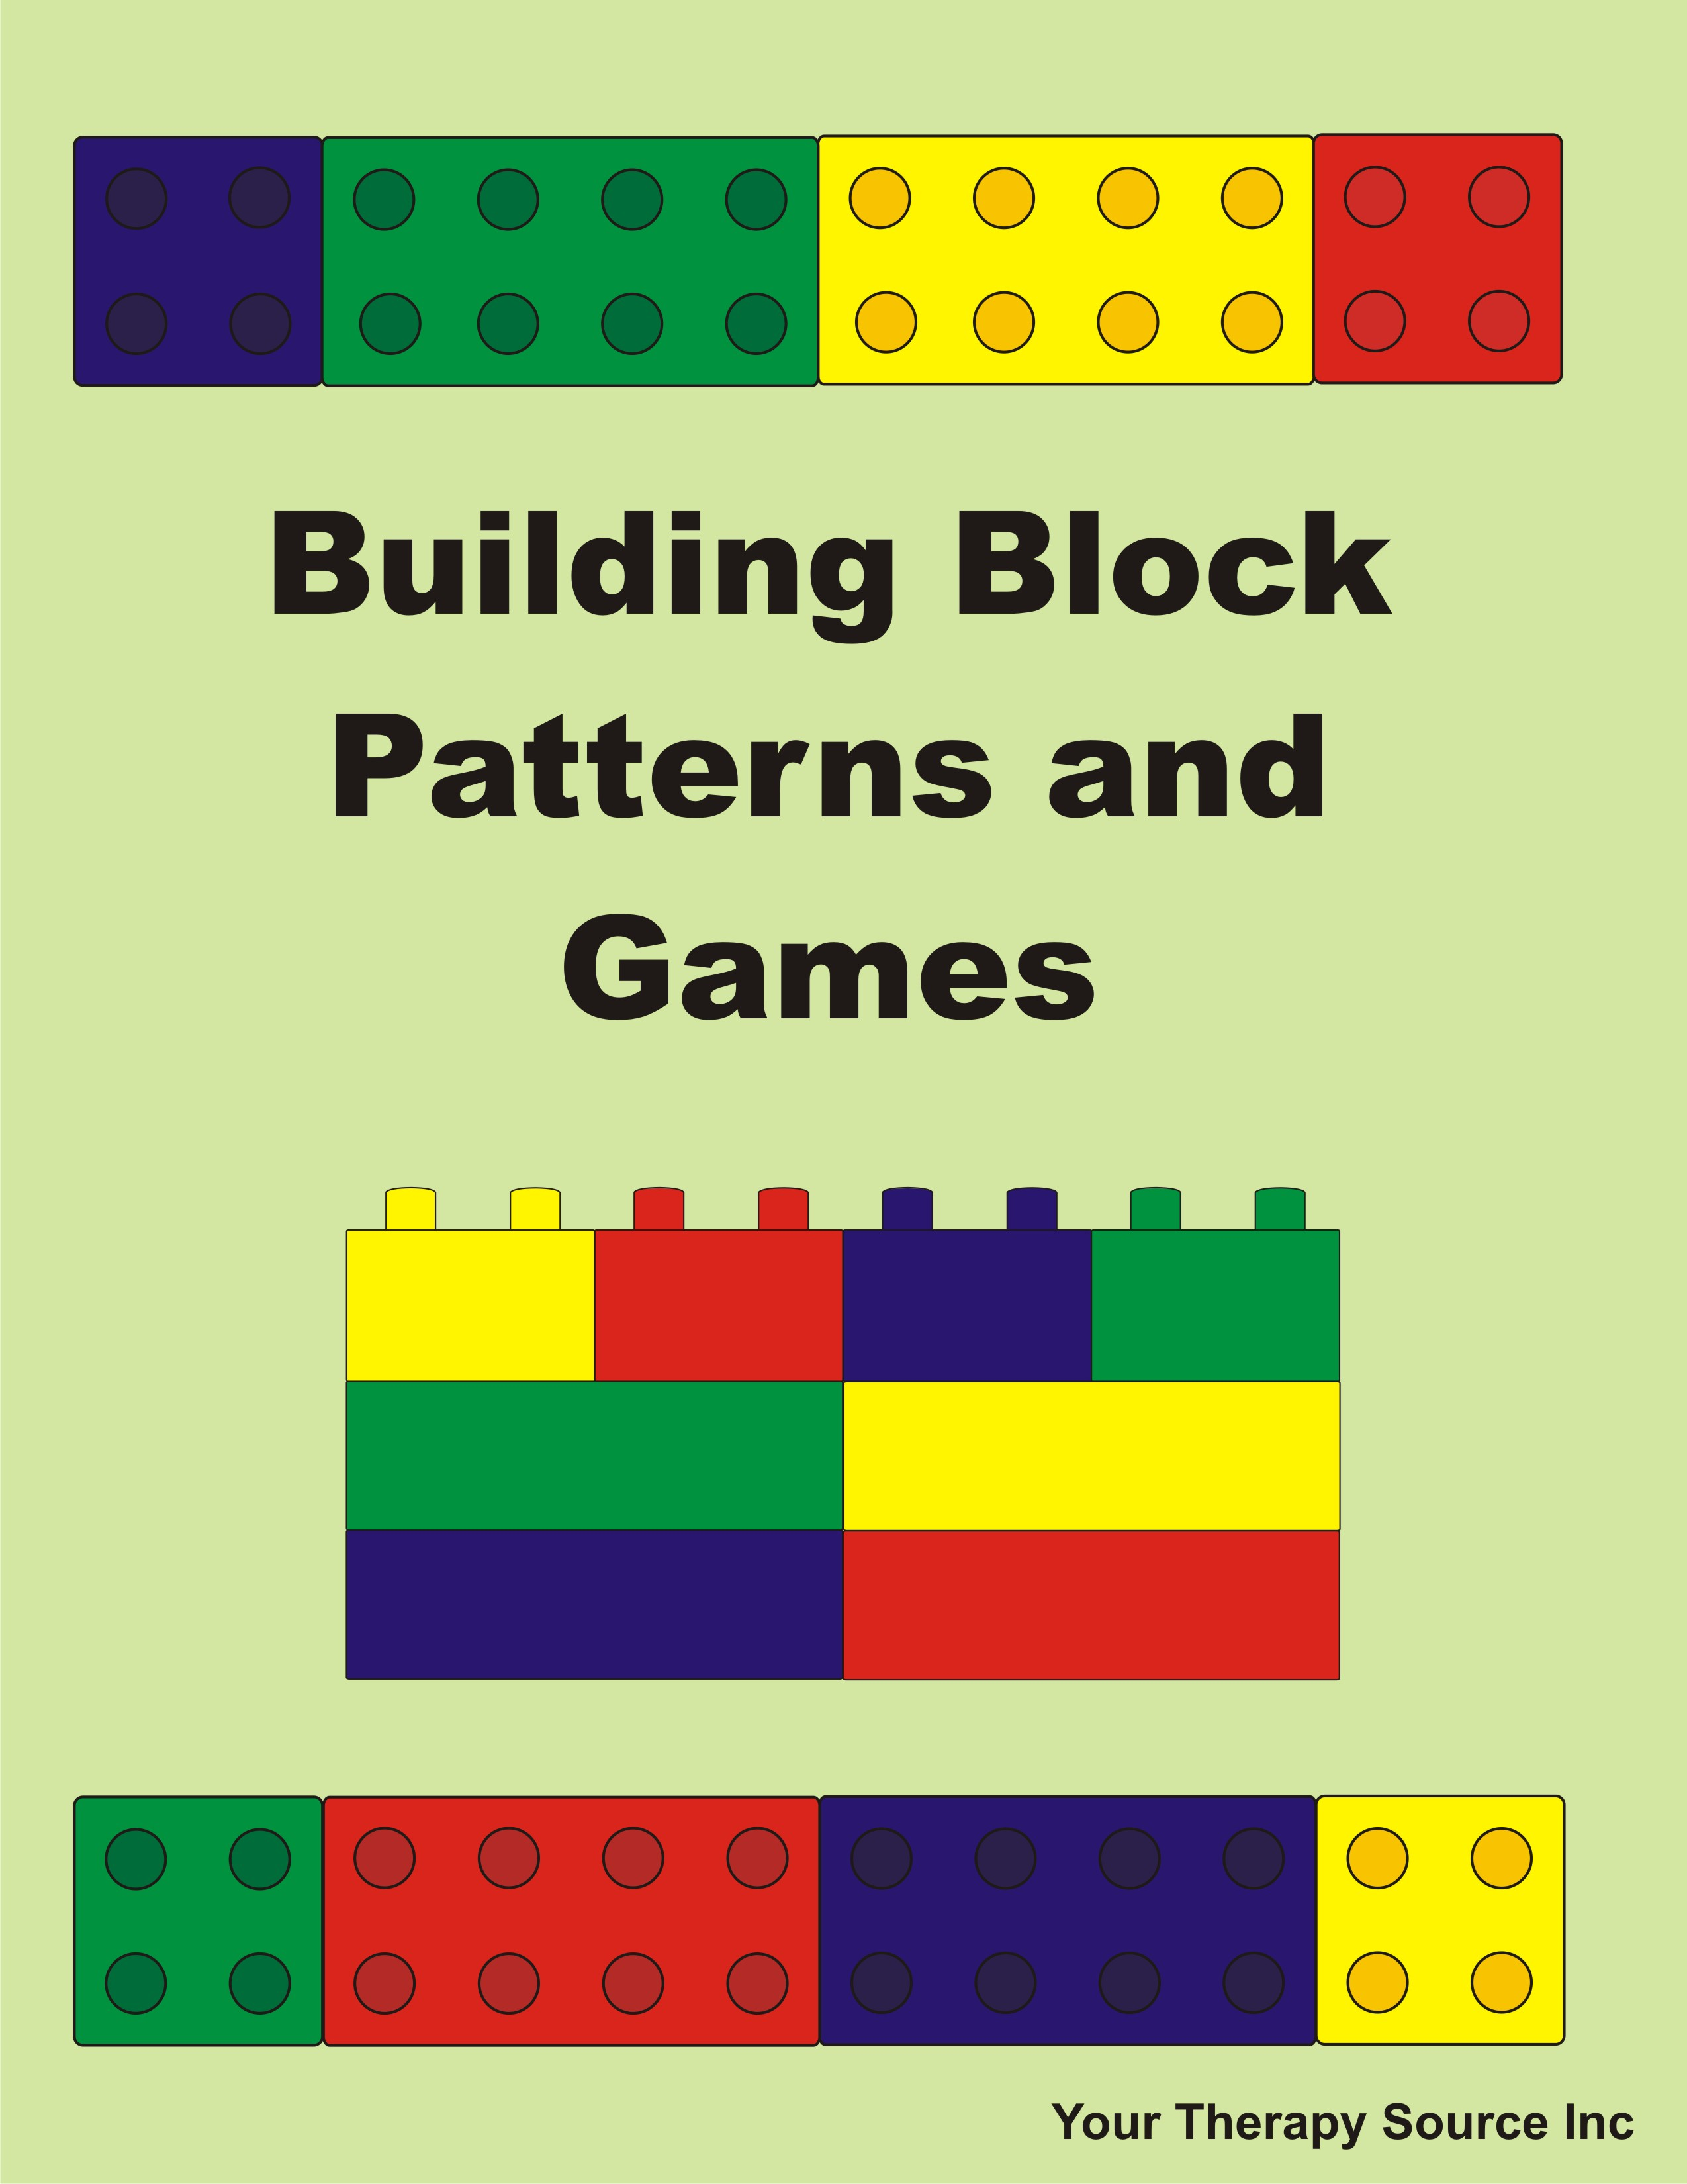 Building Block Patterns and Games from https://yourtherapysource.com/blocks.html